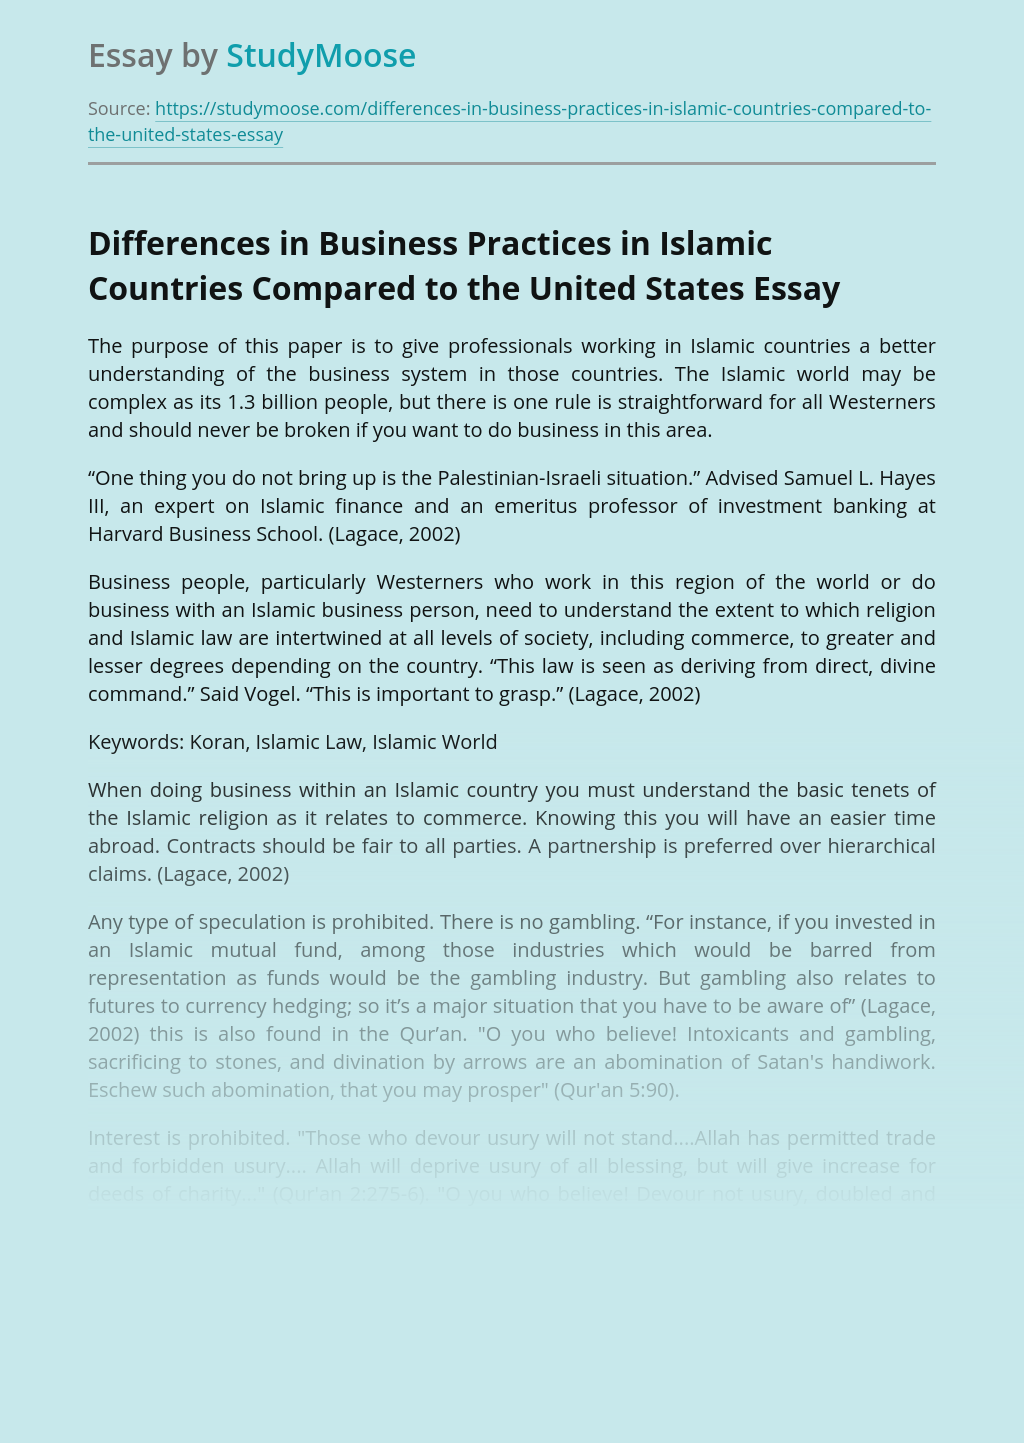 Differences in Business Practices in Islamic Countries Compared to the United States